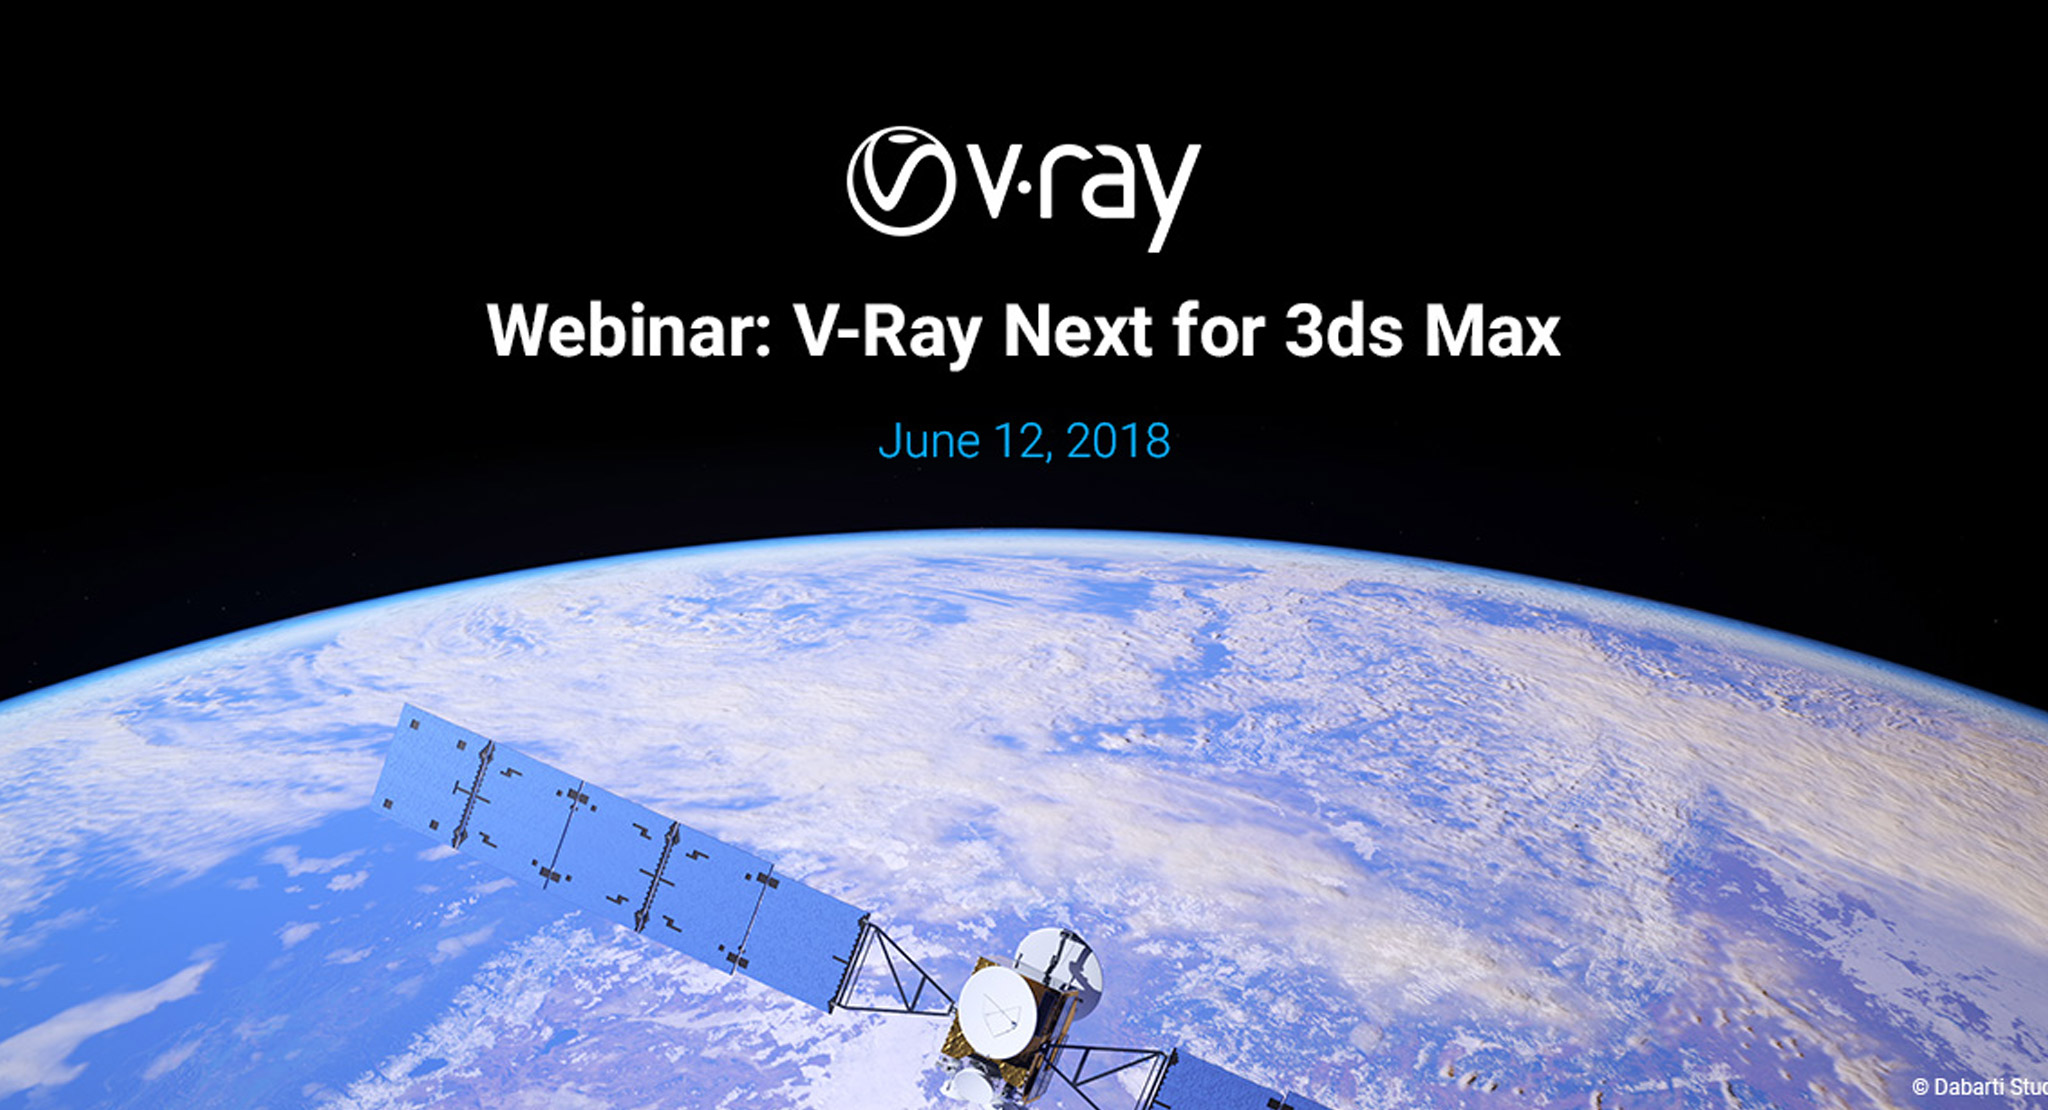 V-Ray Next for 3ds Max webinar